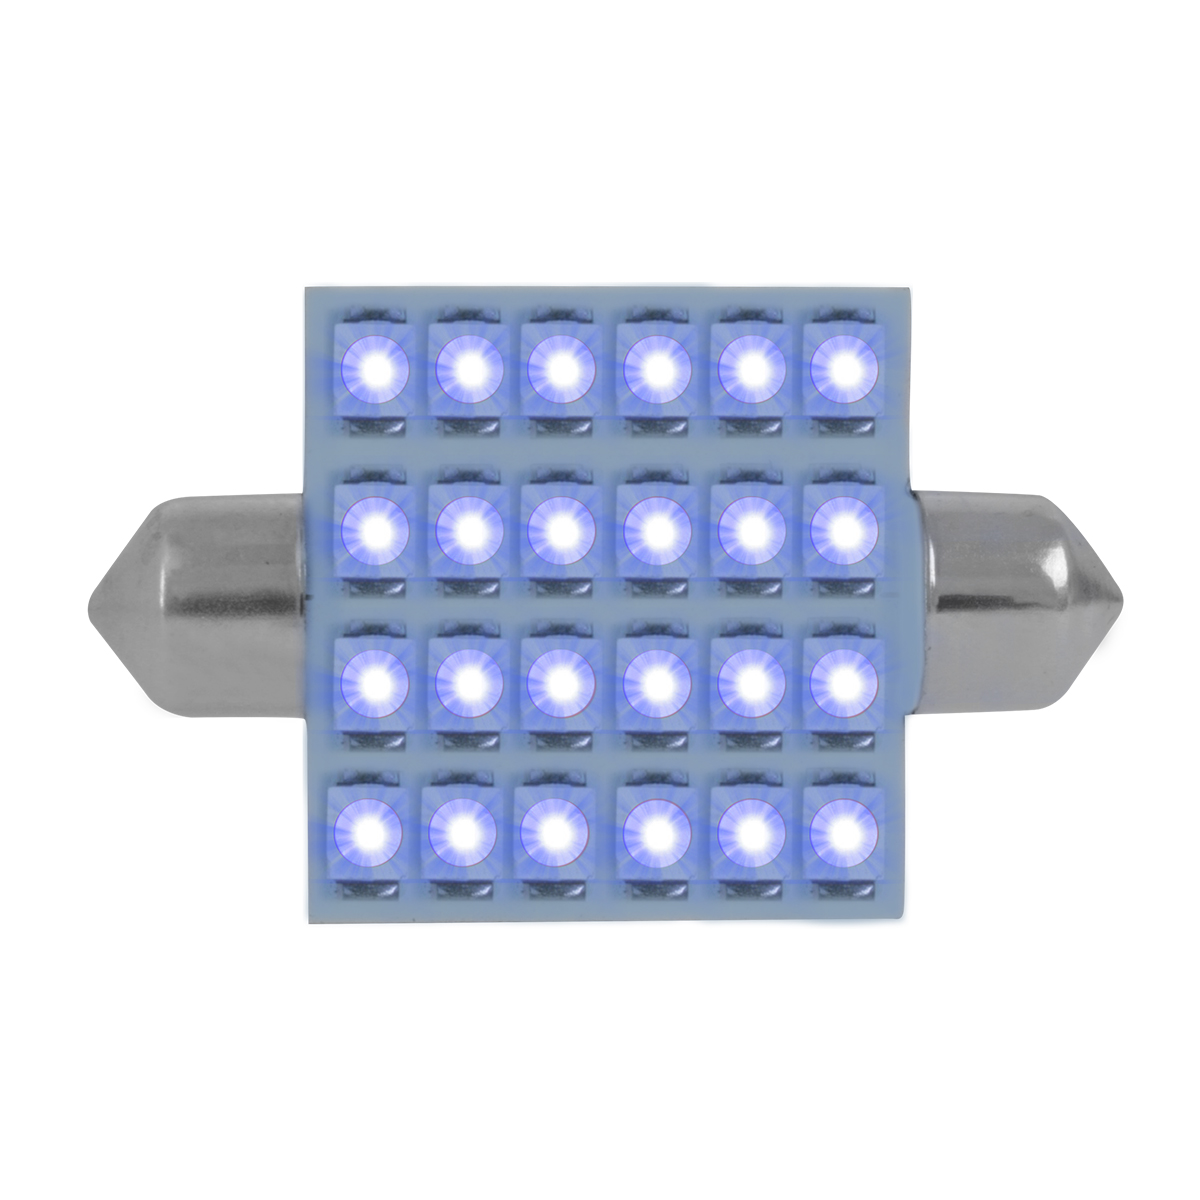 76111 Blue 211-2 Dome Type 24 LED Light Bulb